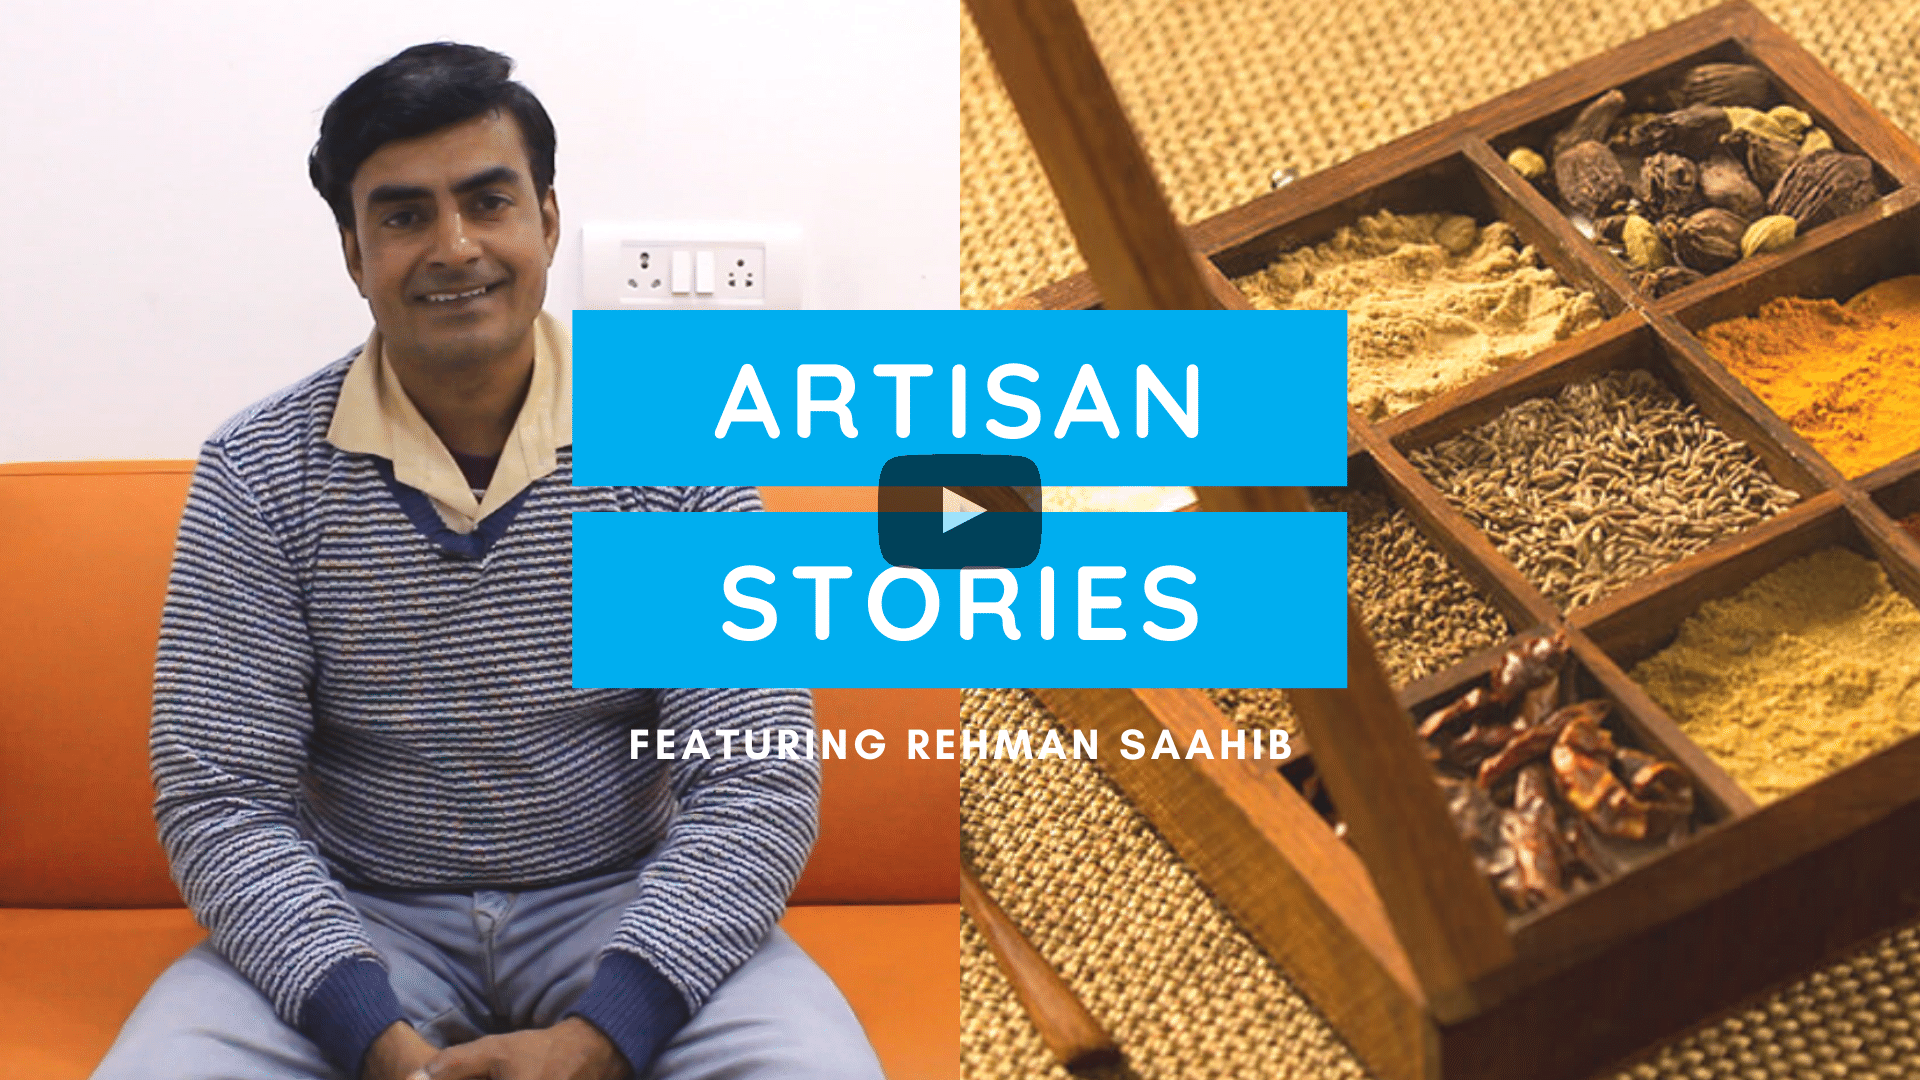 Artisan Stories by ExclusiveLane- Meet Rahman Sahib